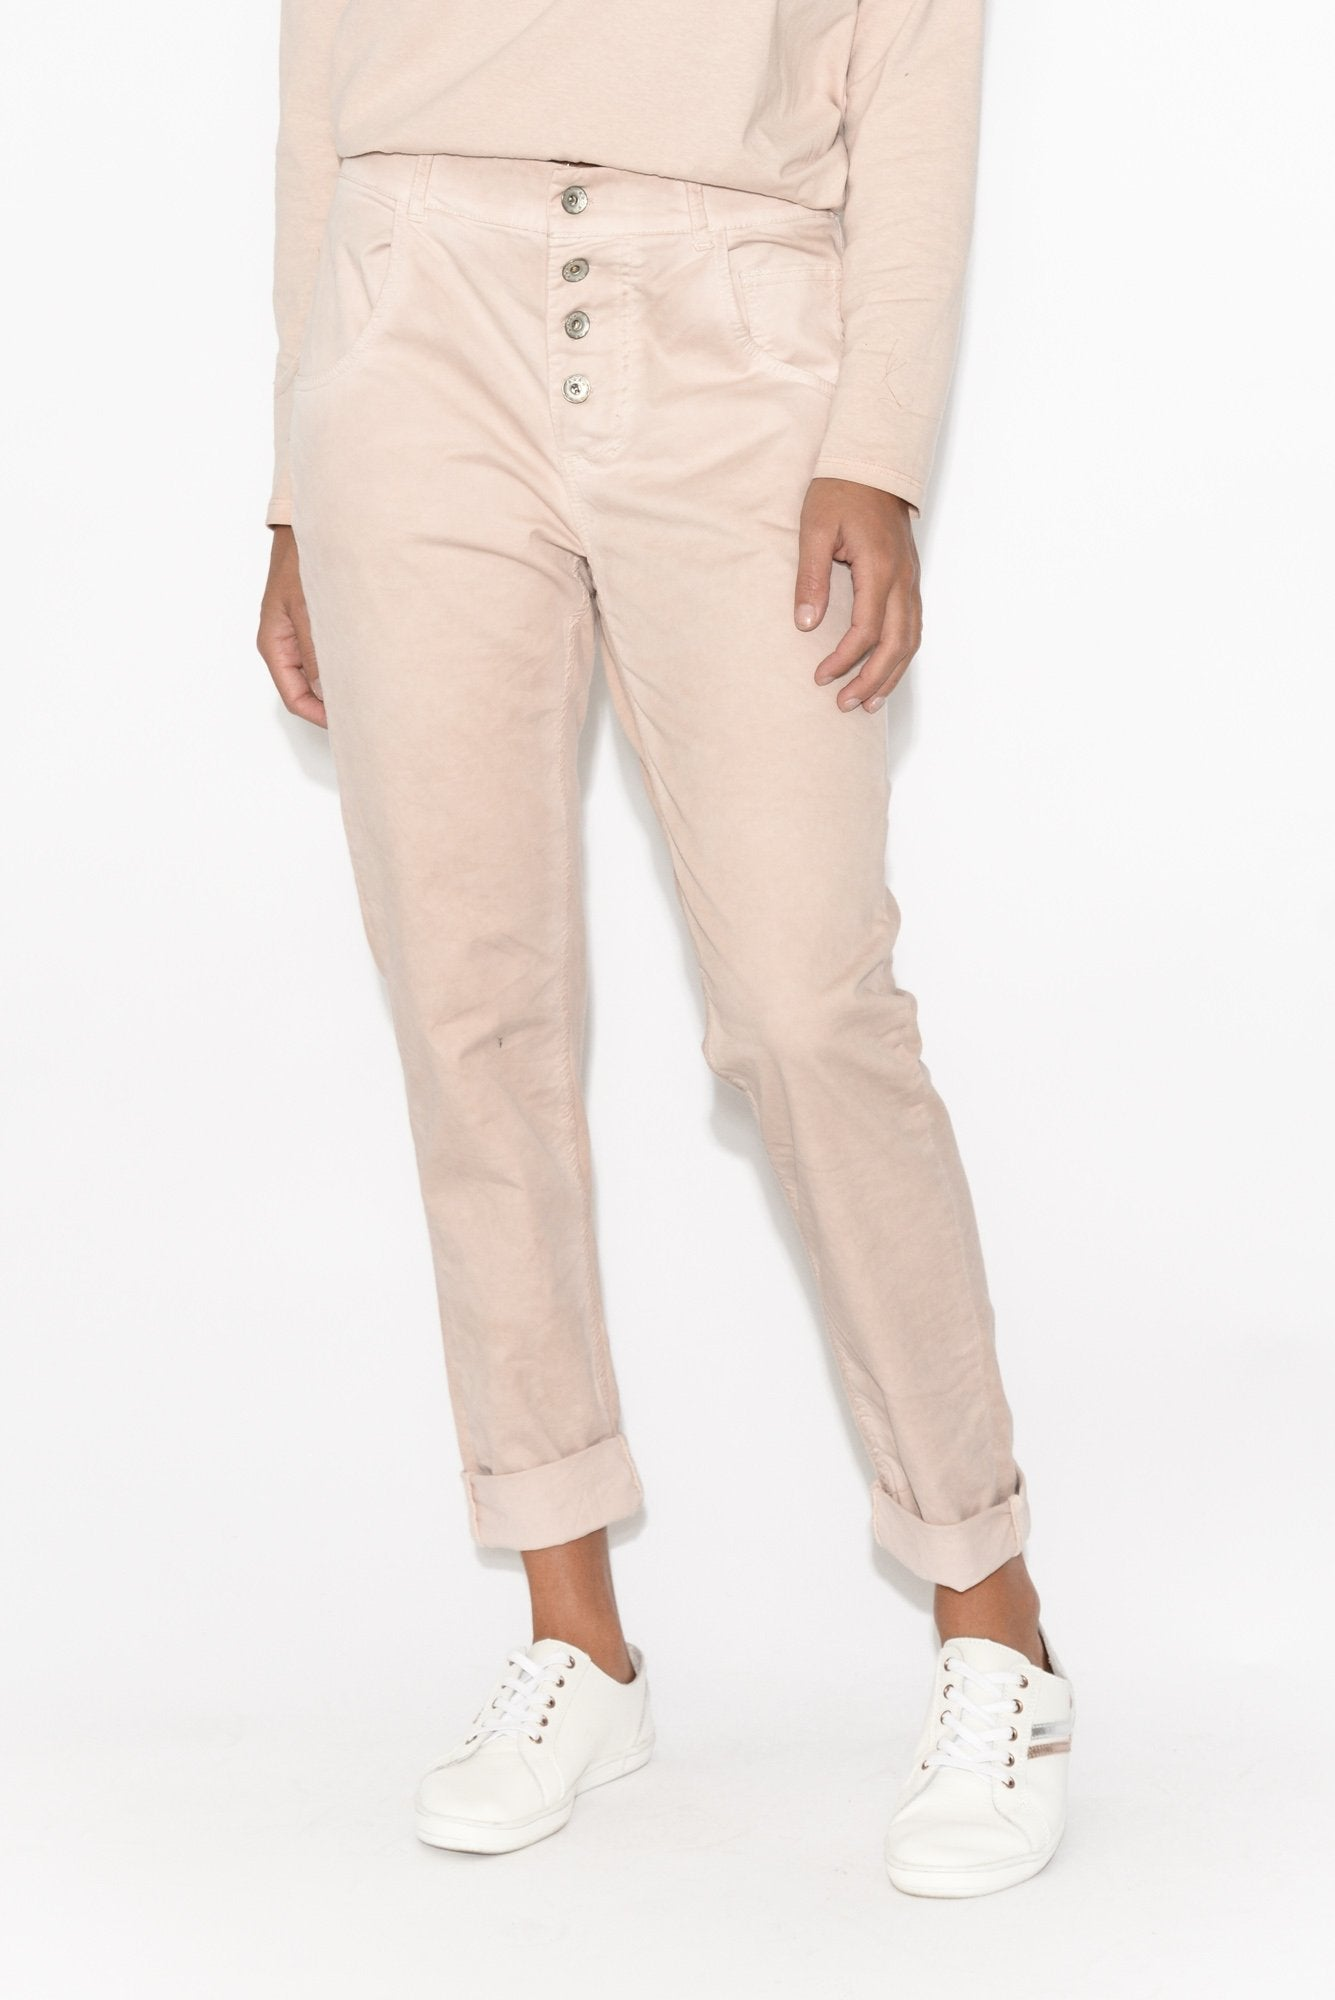 Abigail Pink Stretch Back Pant